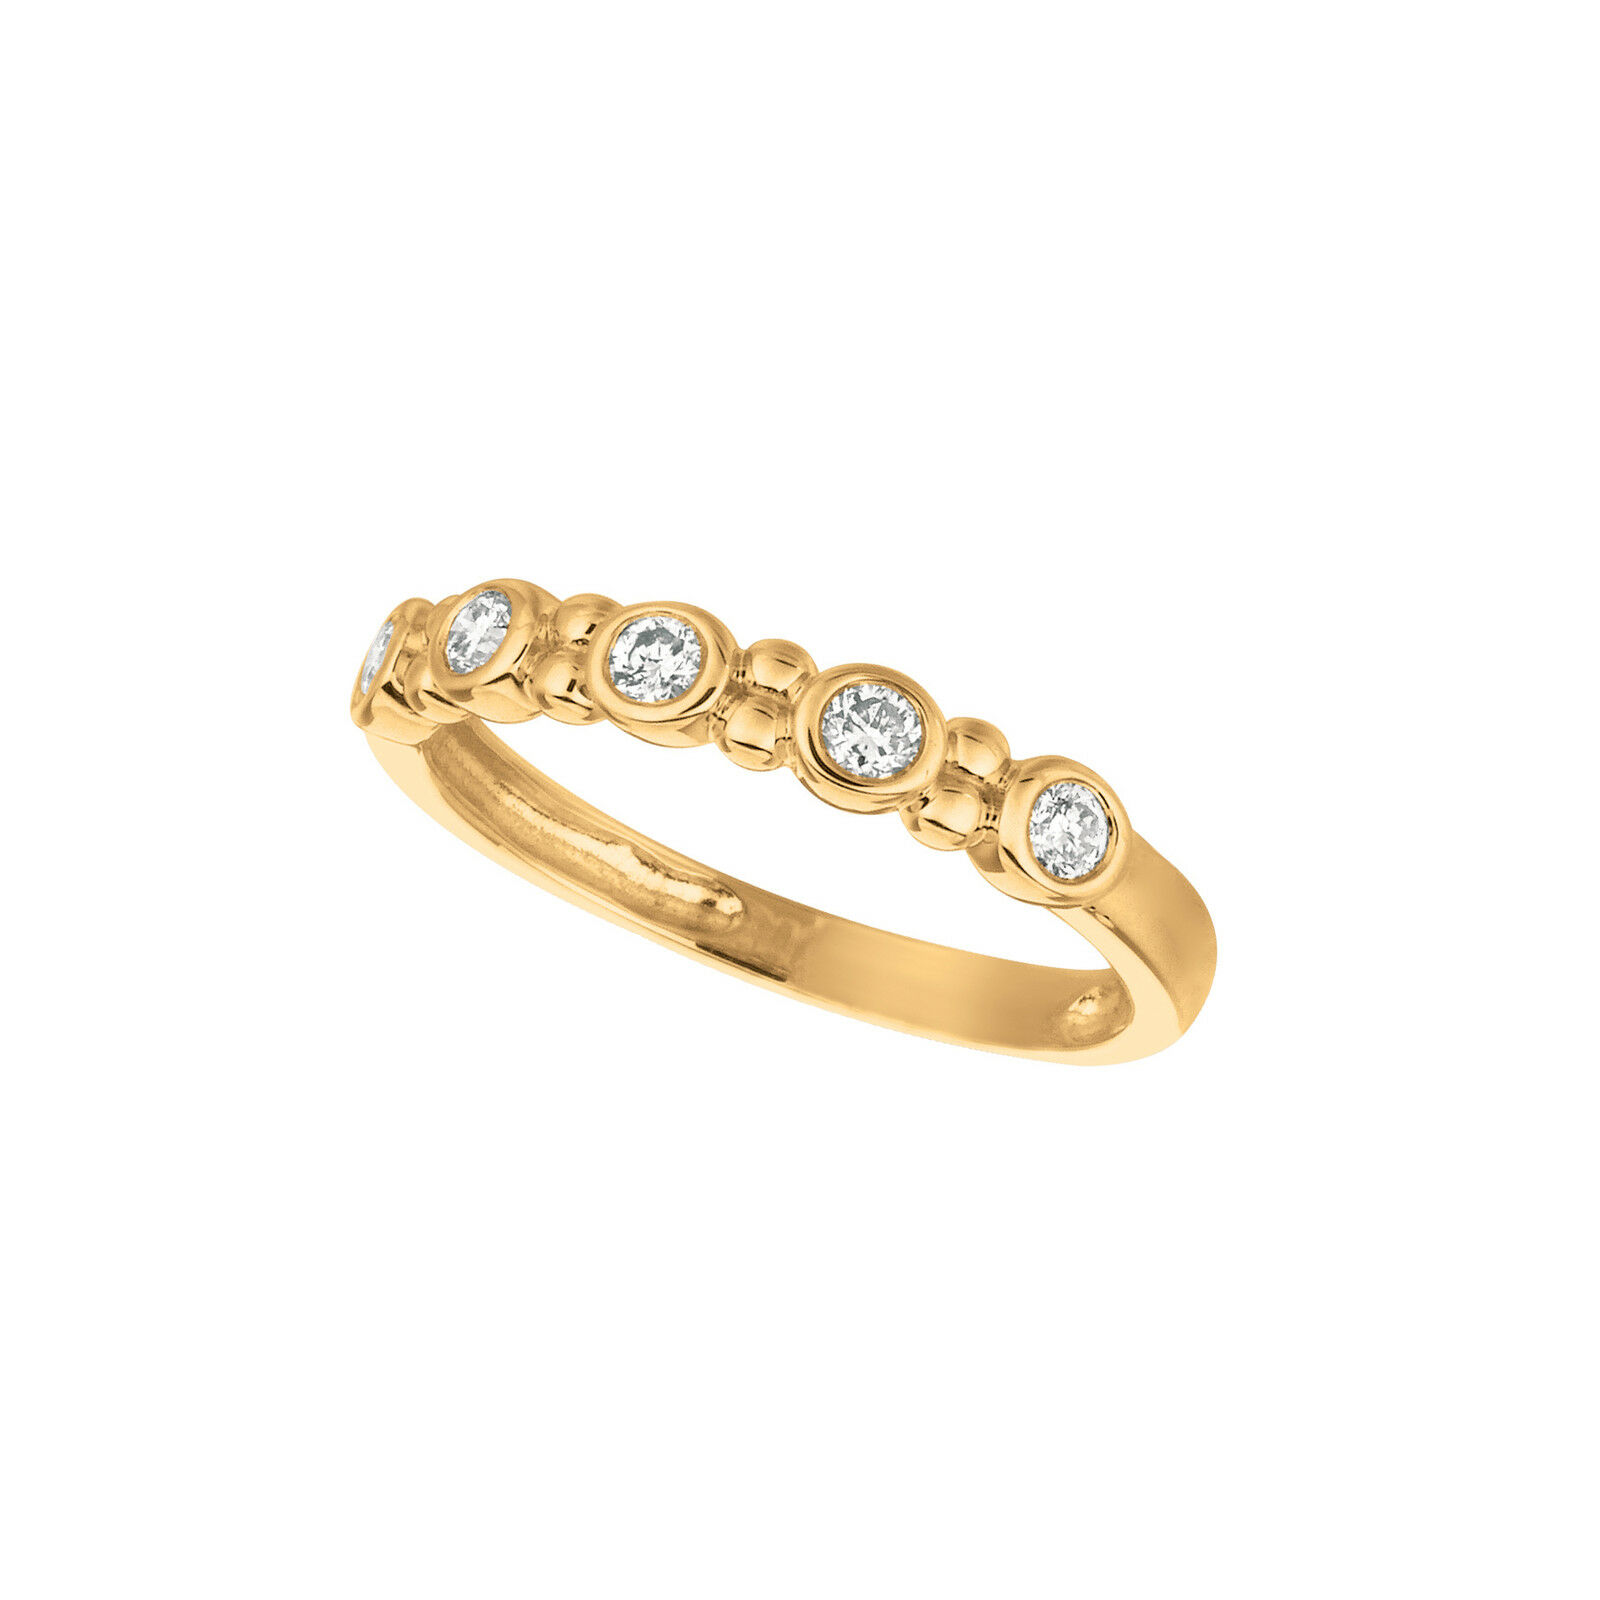 0.25 CT Diamond bezel set ring Set In 14K Yellow gold IDJR6882YD